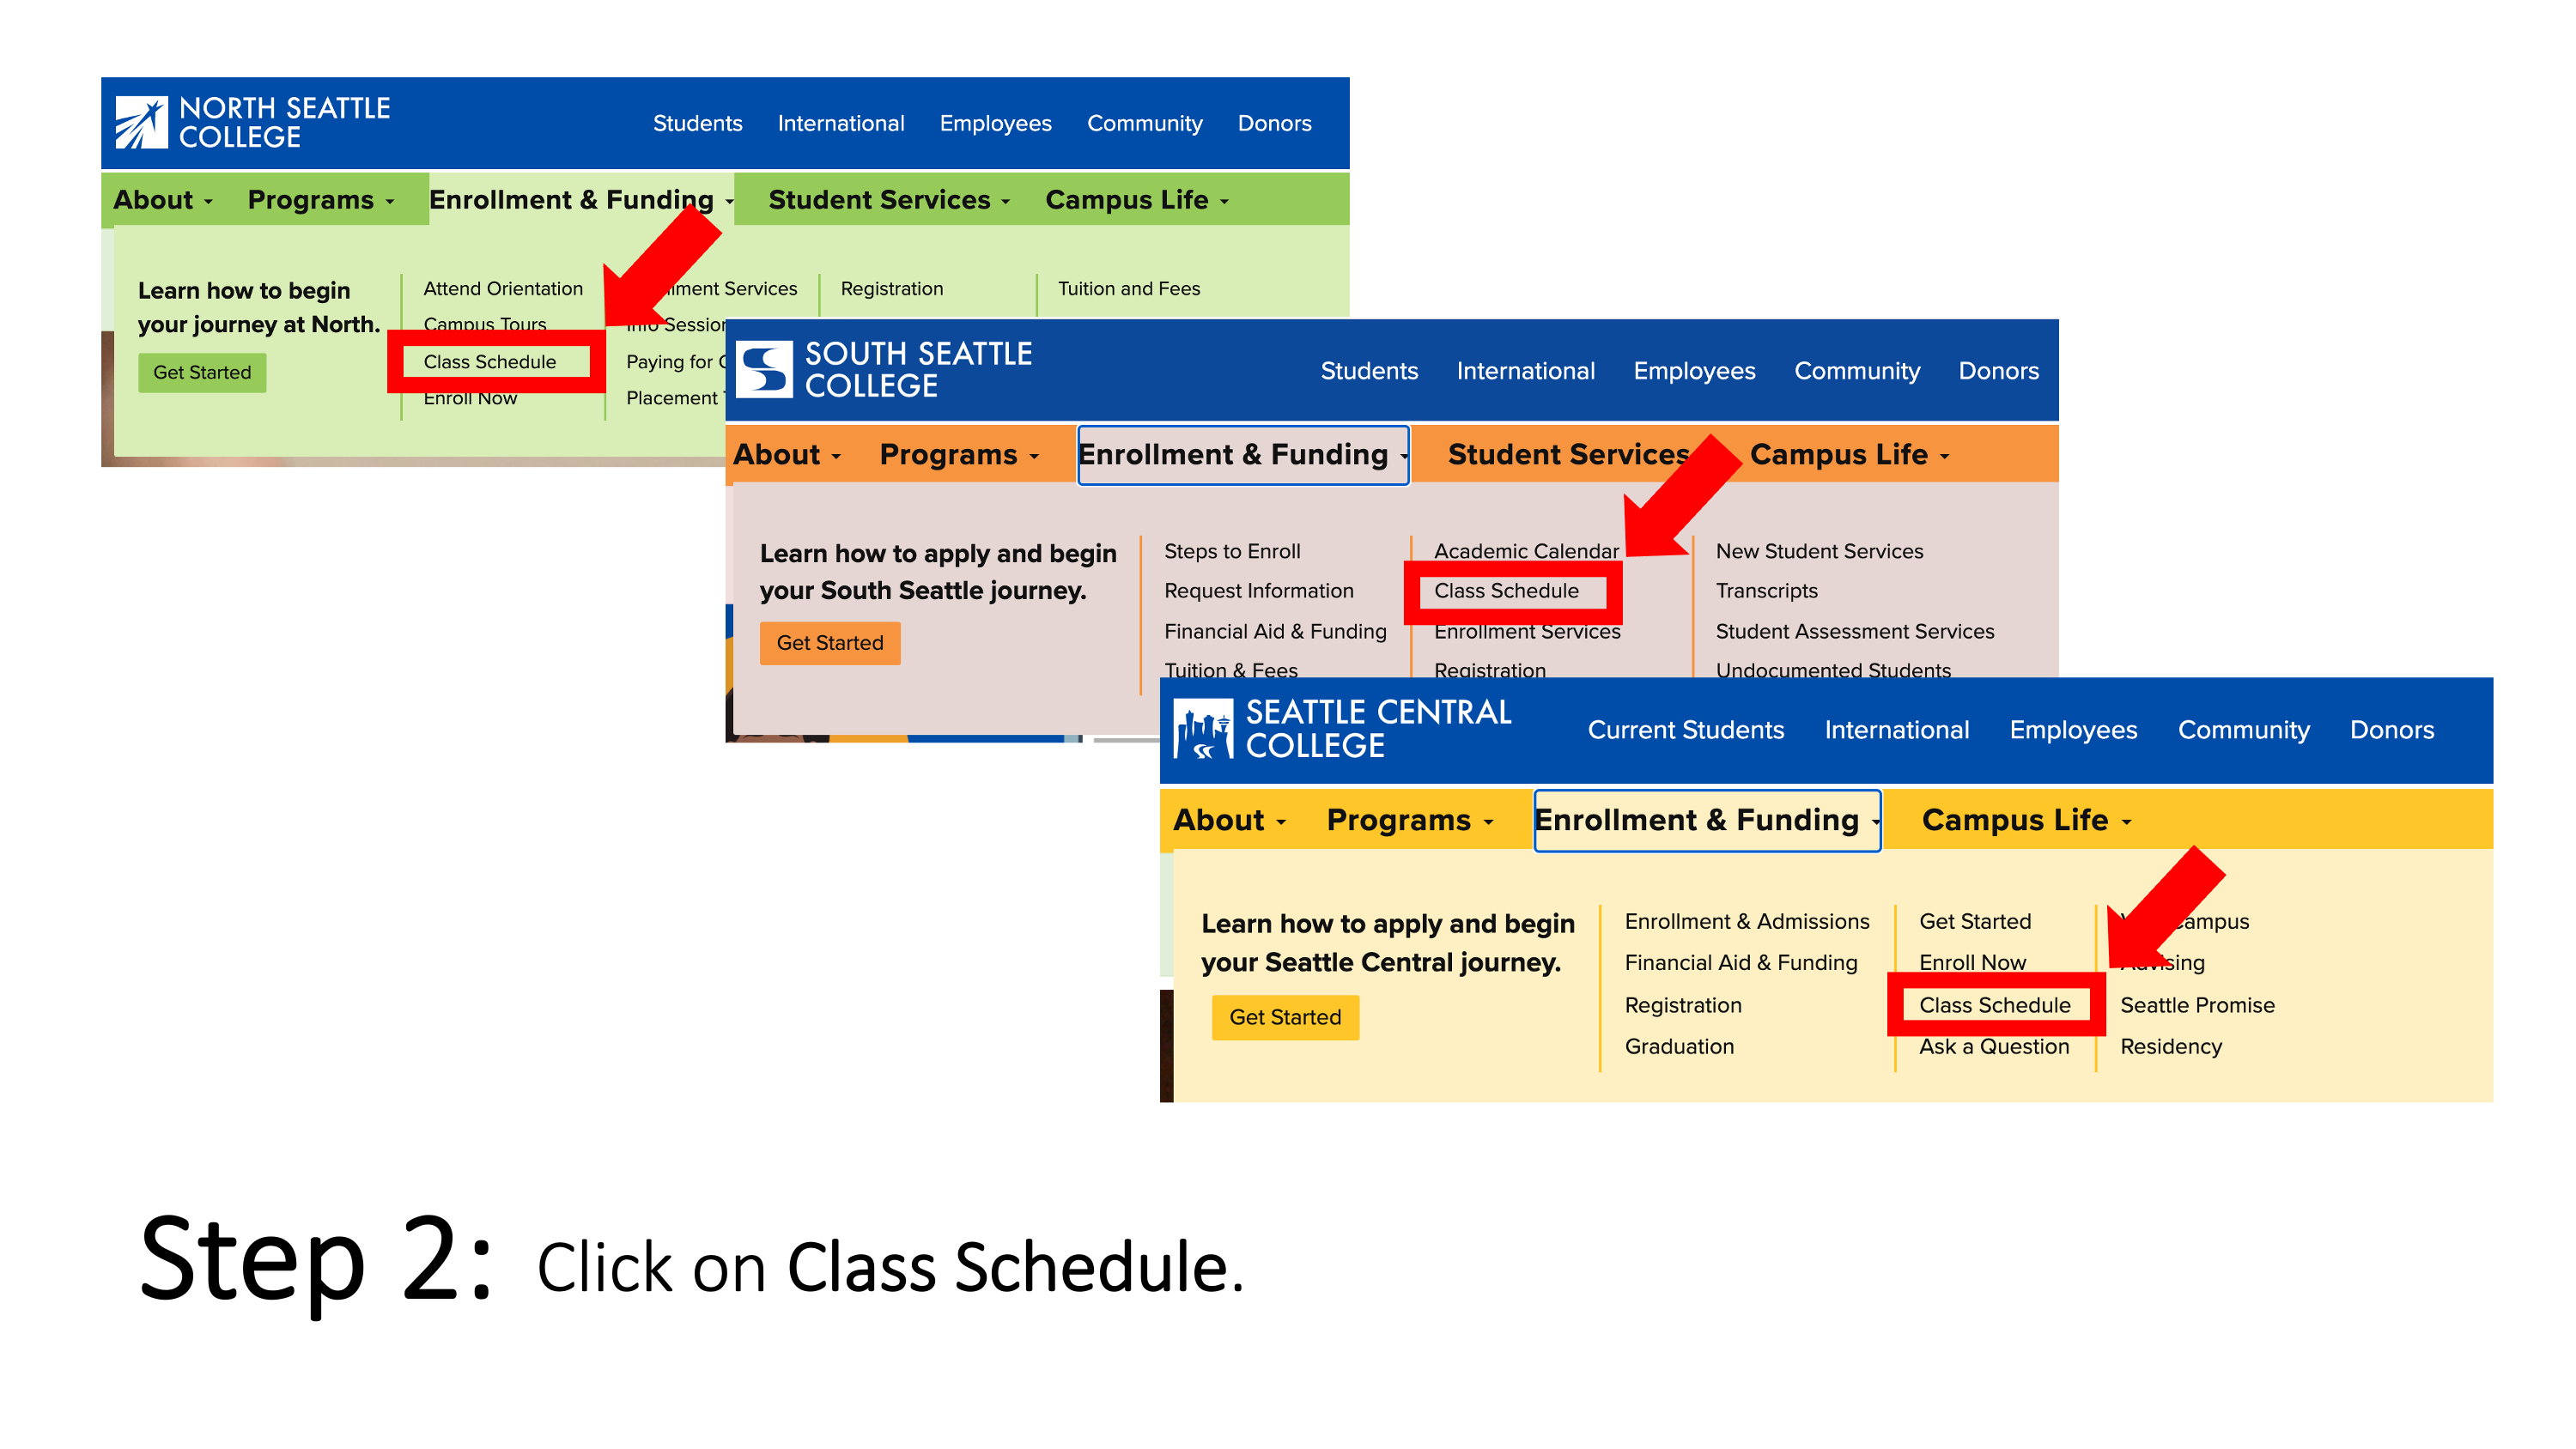 Click on Class Schedule.